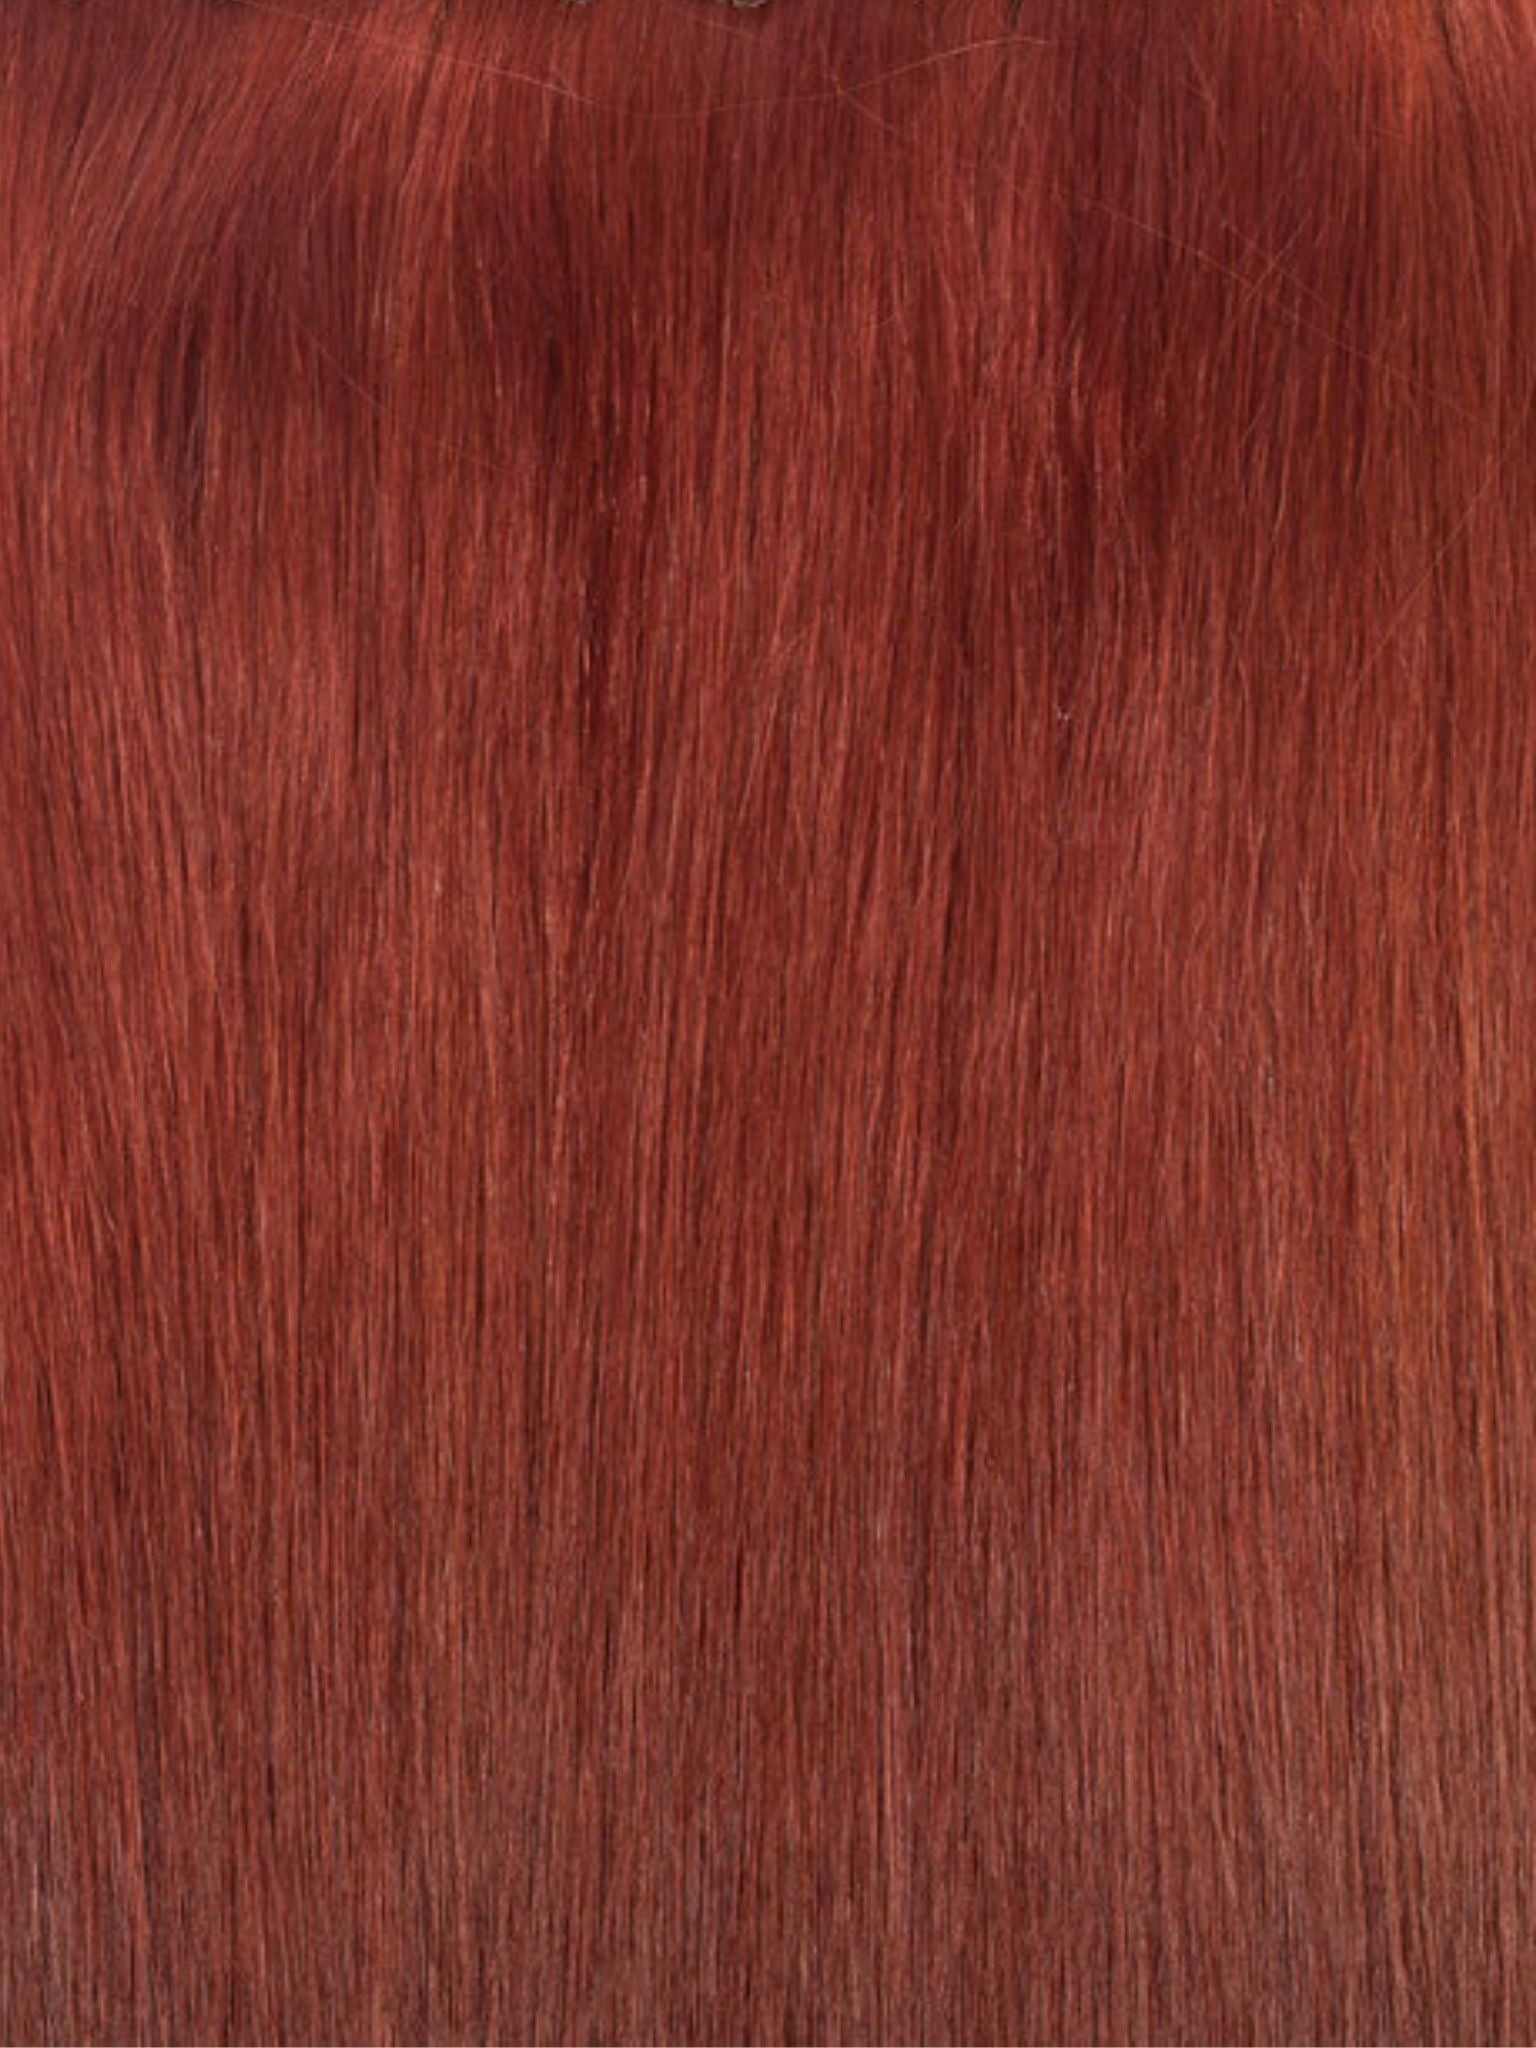 Stick Tip Hair Extensions - Vixen Auburn #33